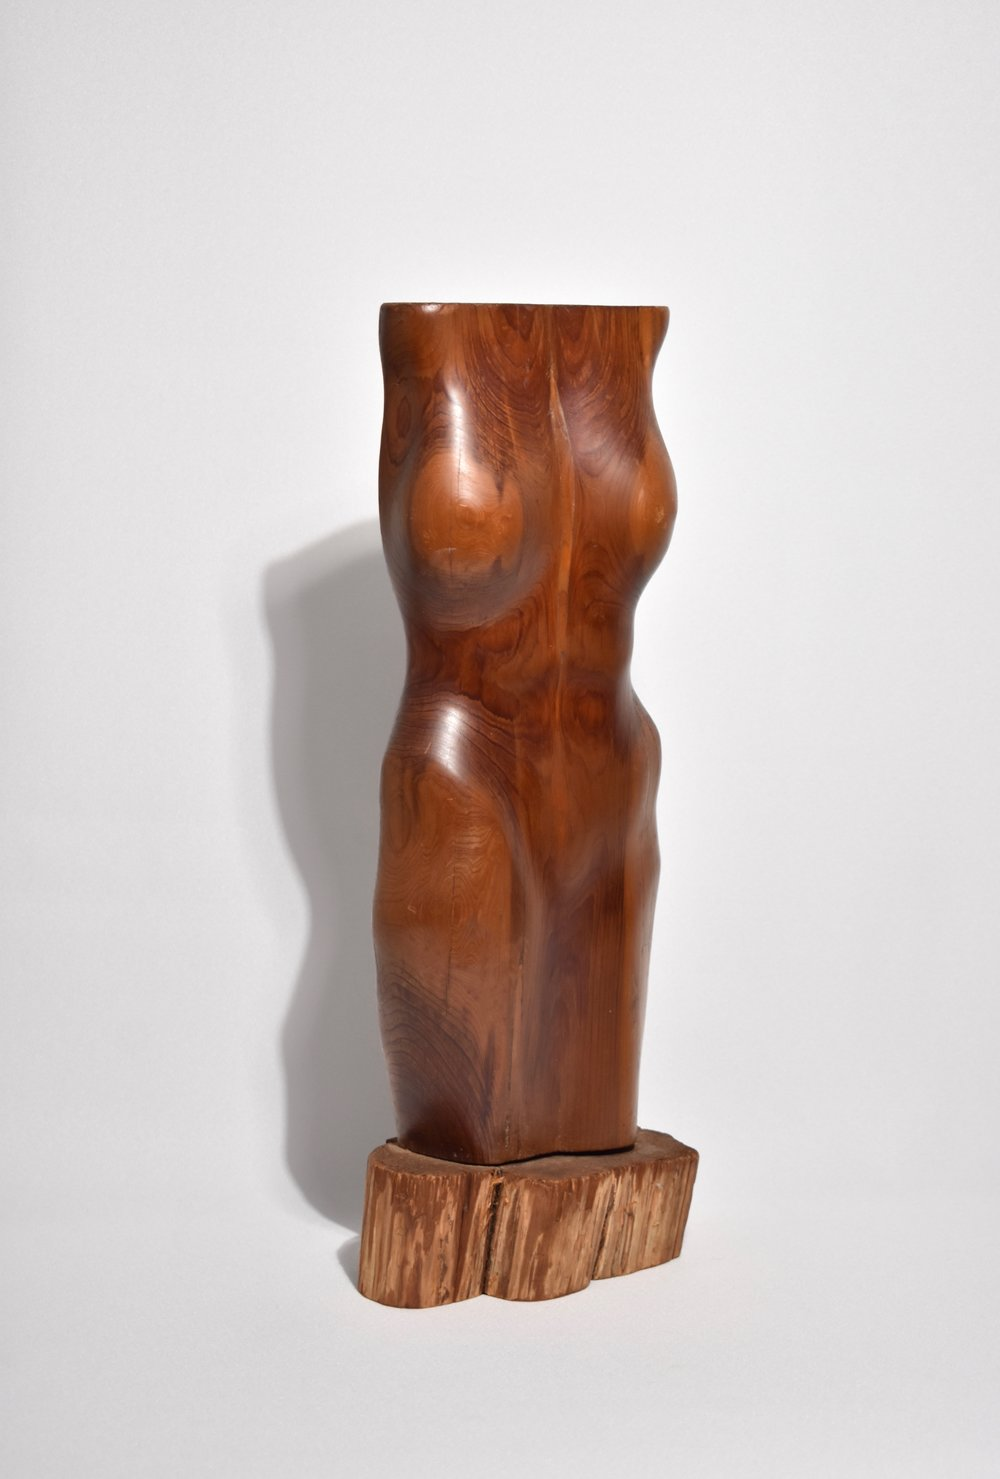 Wooden Torso Sculpture